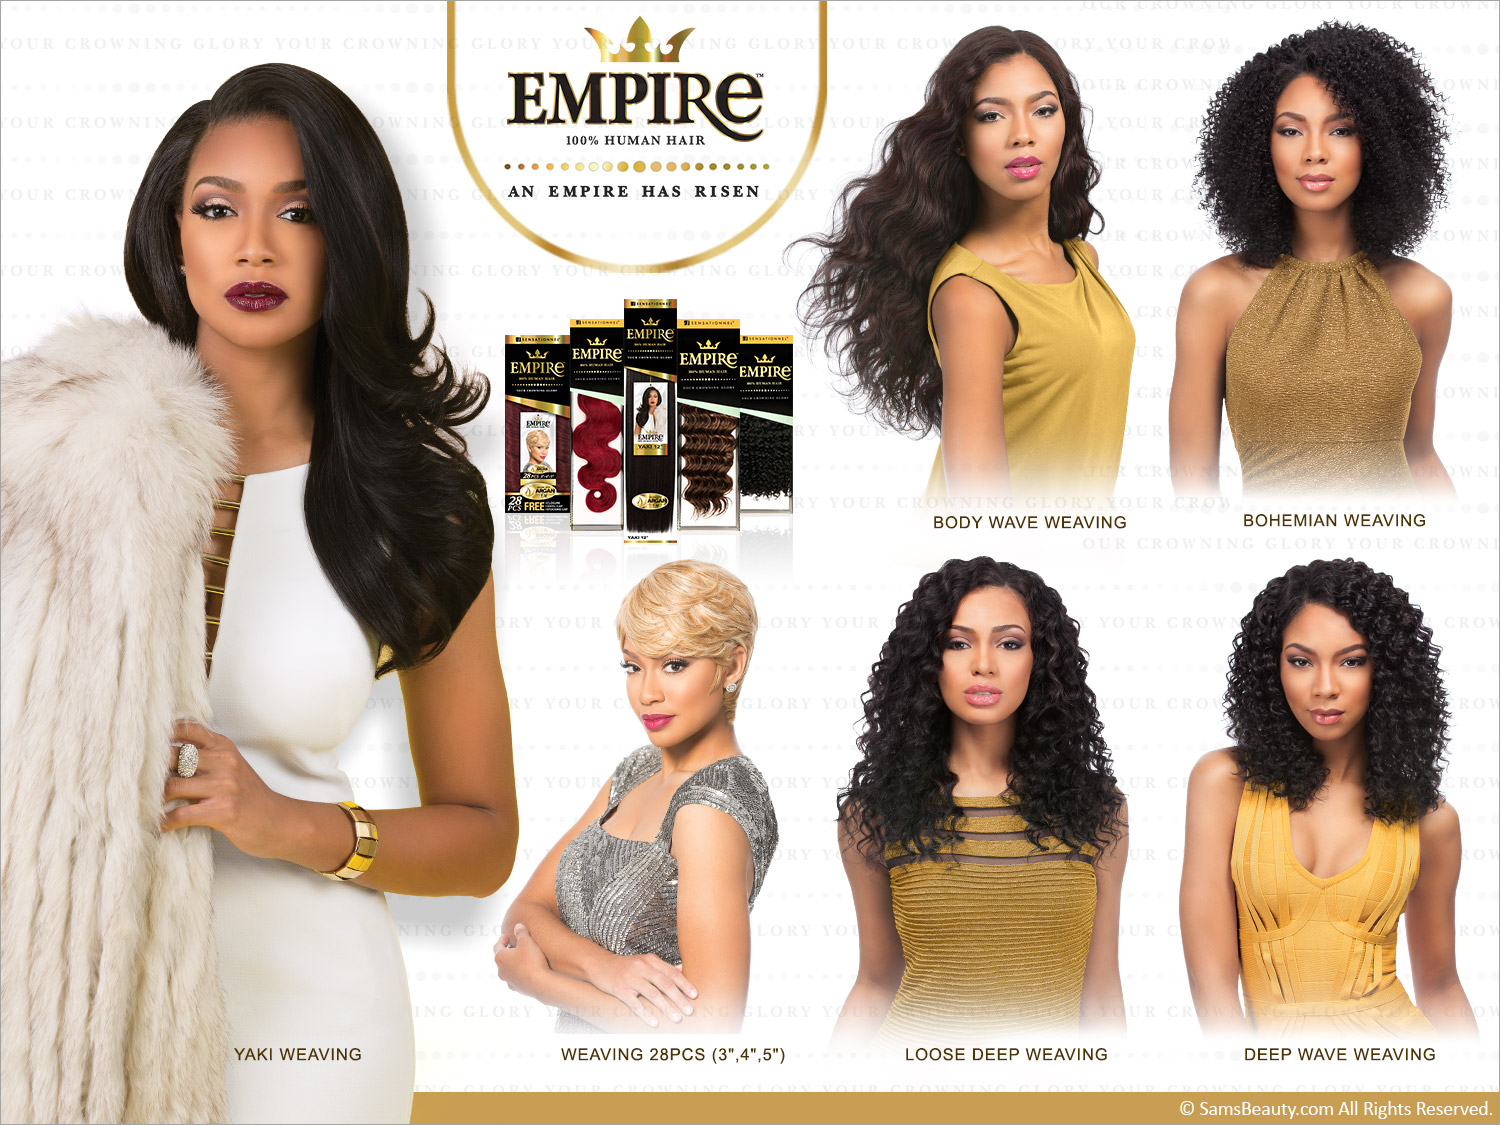 Sensationnel Human Hair Weave Empire Loose Deep Weaving Samsbeauty